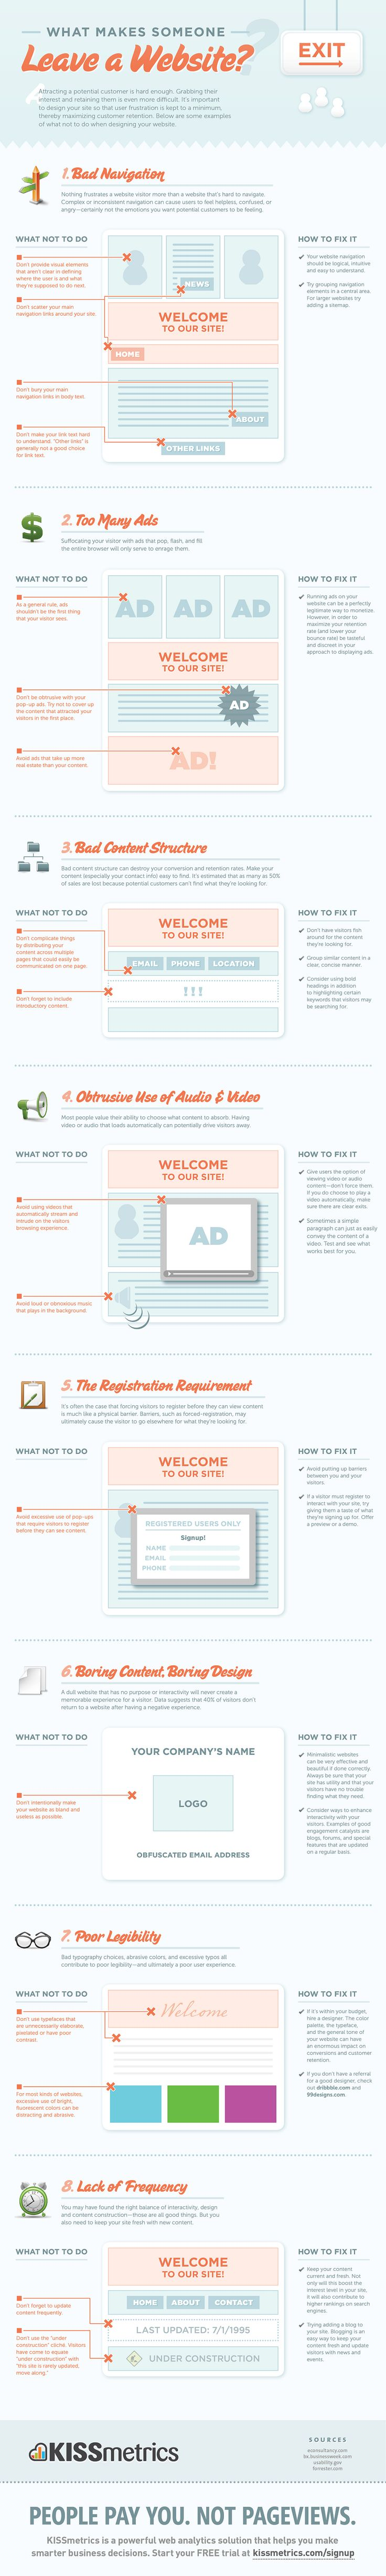 Internet Marketing: 8 things that are driving people away from your website and how you can fix them.